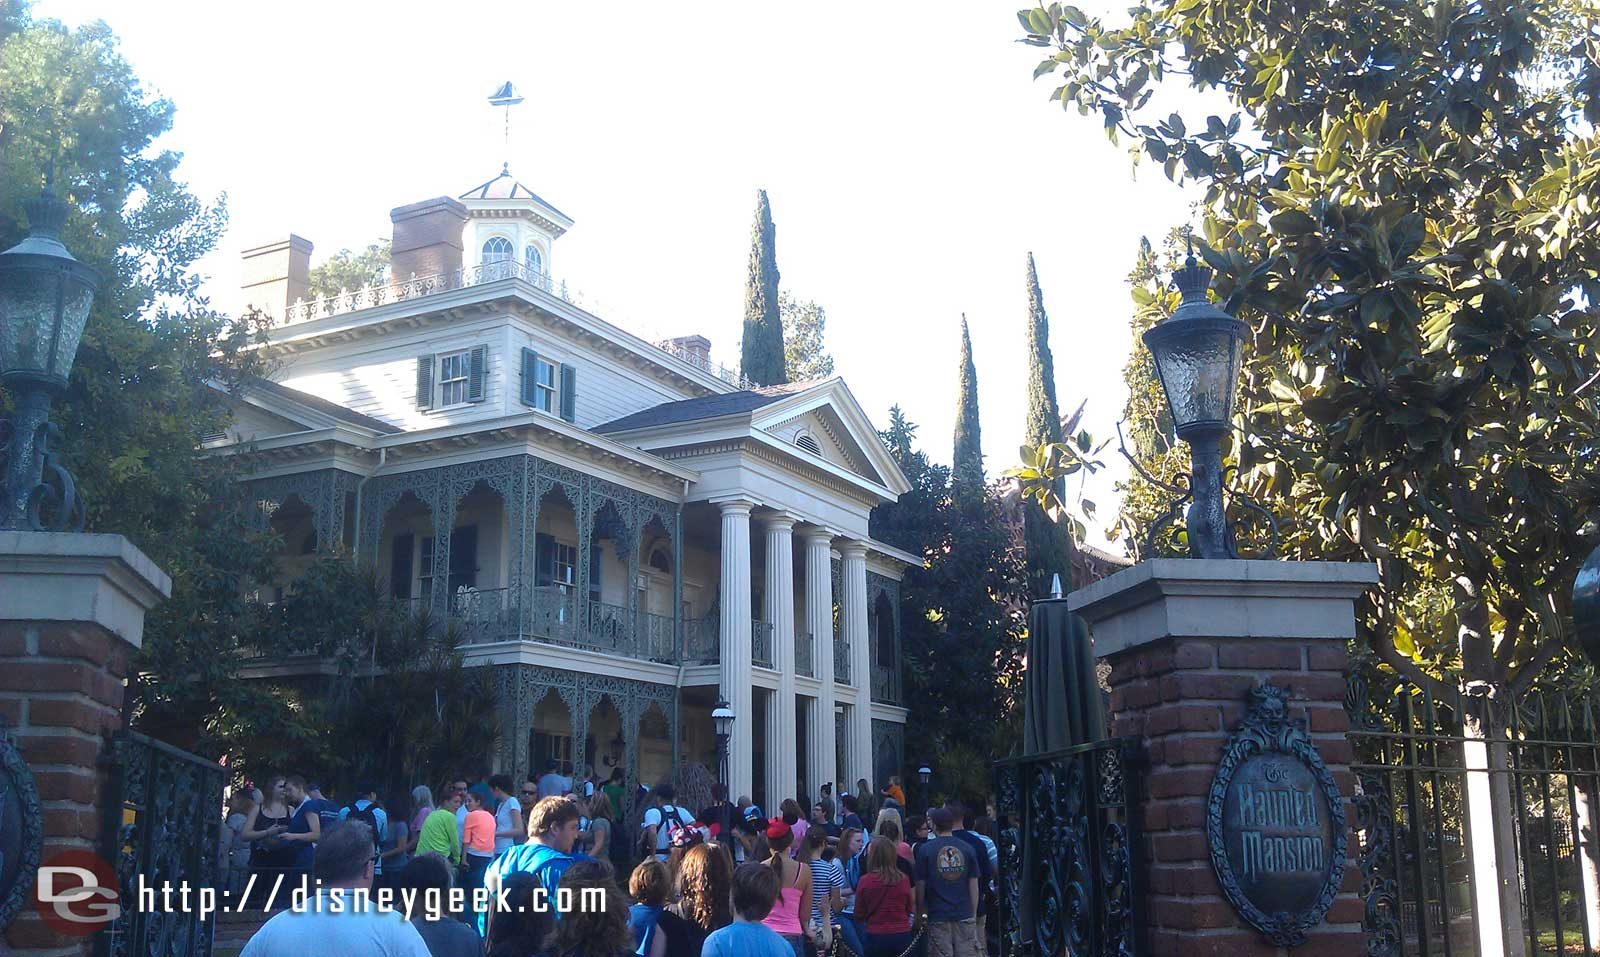 The Haunted Mansion has reopened.